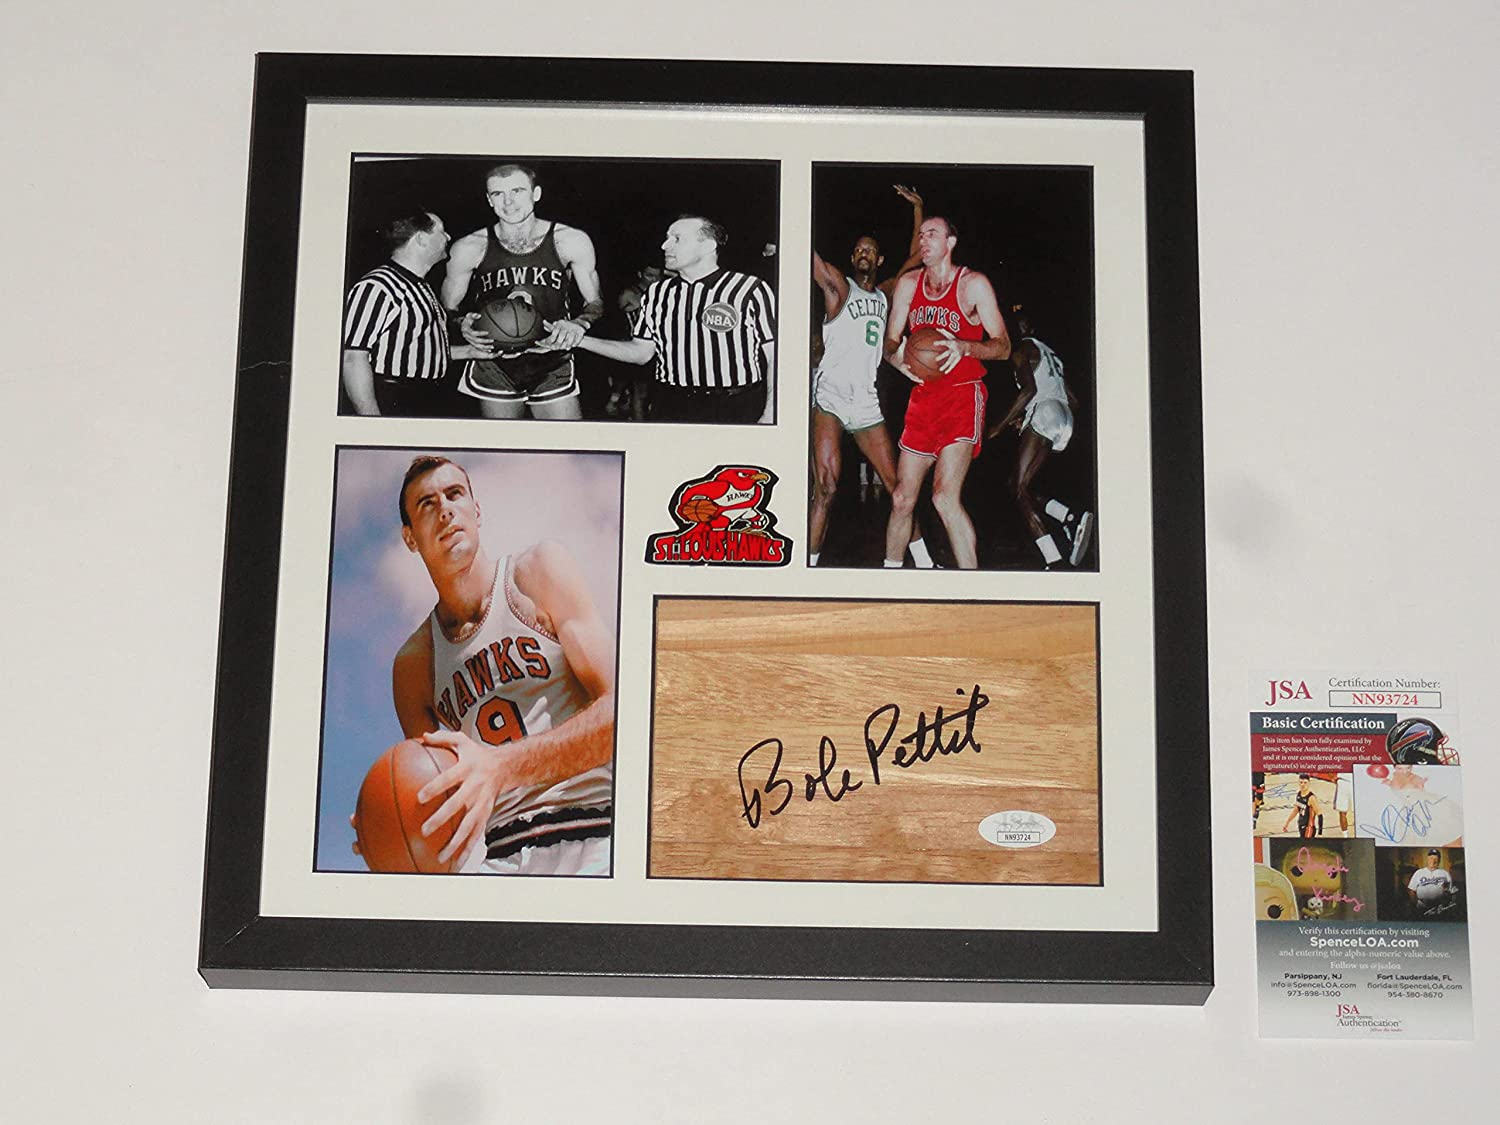 BOB PETTIT SIGNED Lowest price challenge 12X12 Safety and trust FRAMED FLOORBOARD J HALL FAME COLLAGE OF